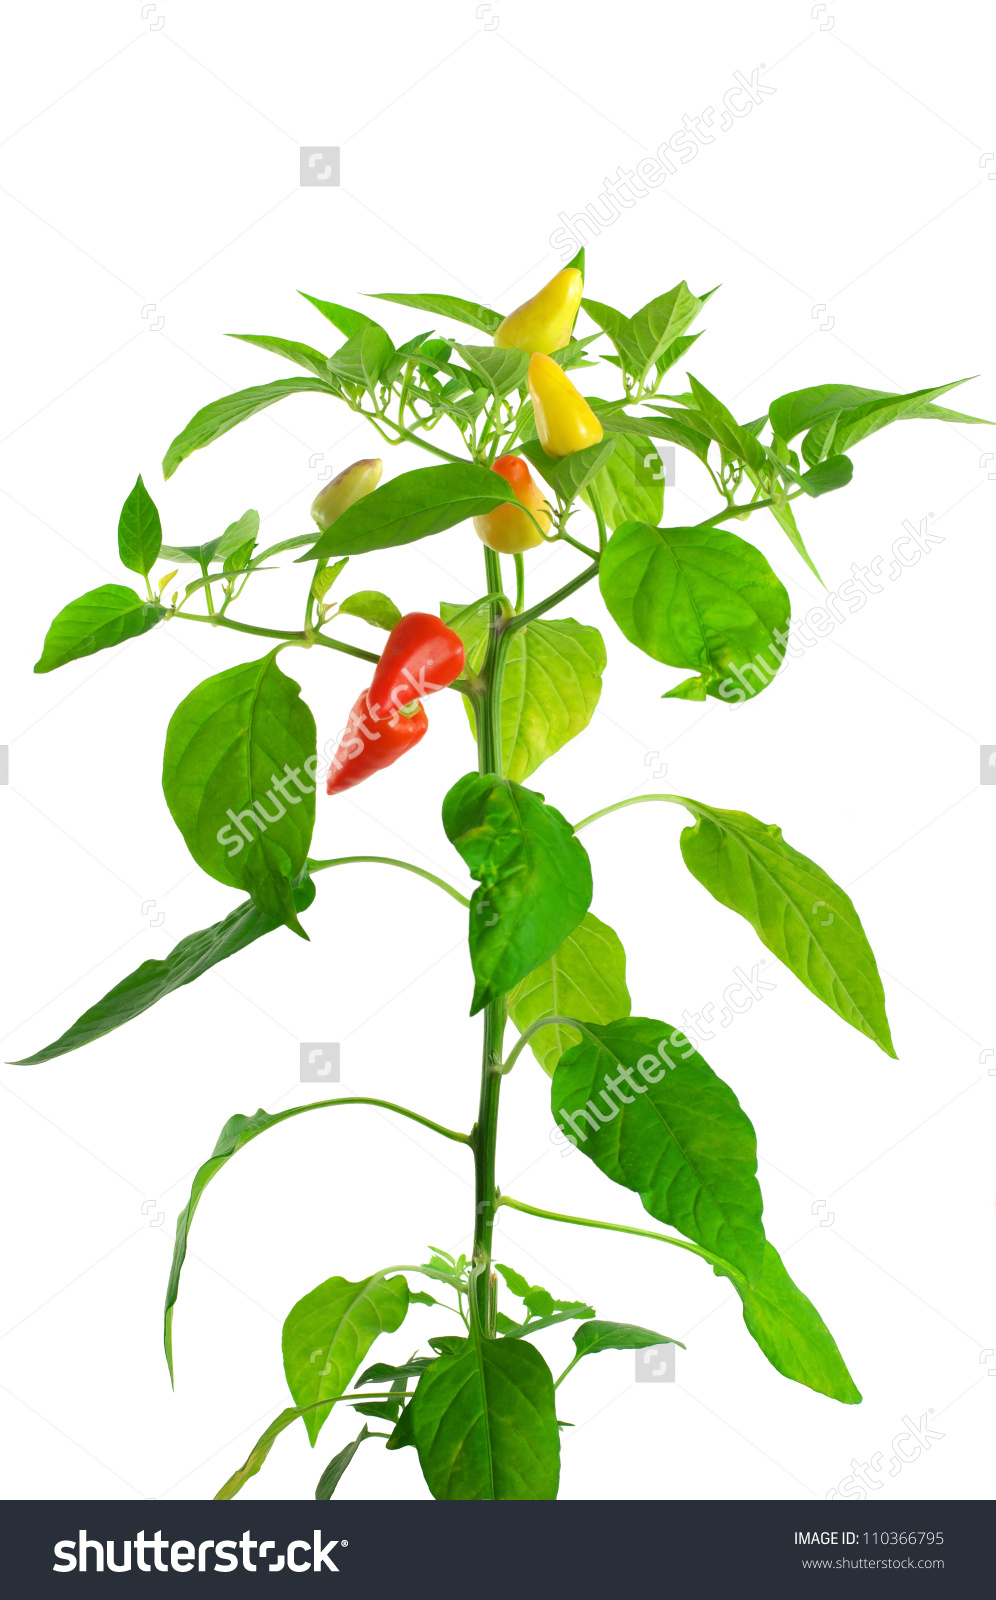 Pepper Plant On White Background Stock Photo 110366795.